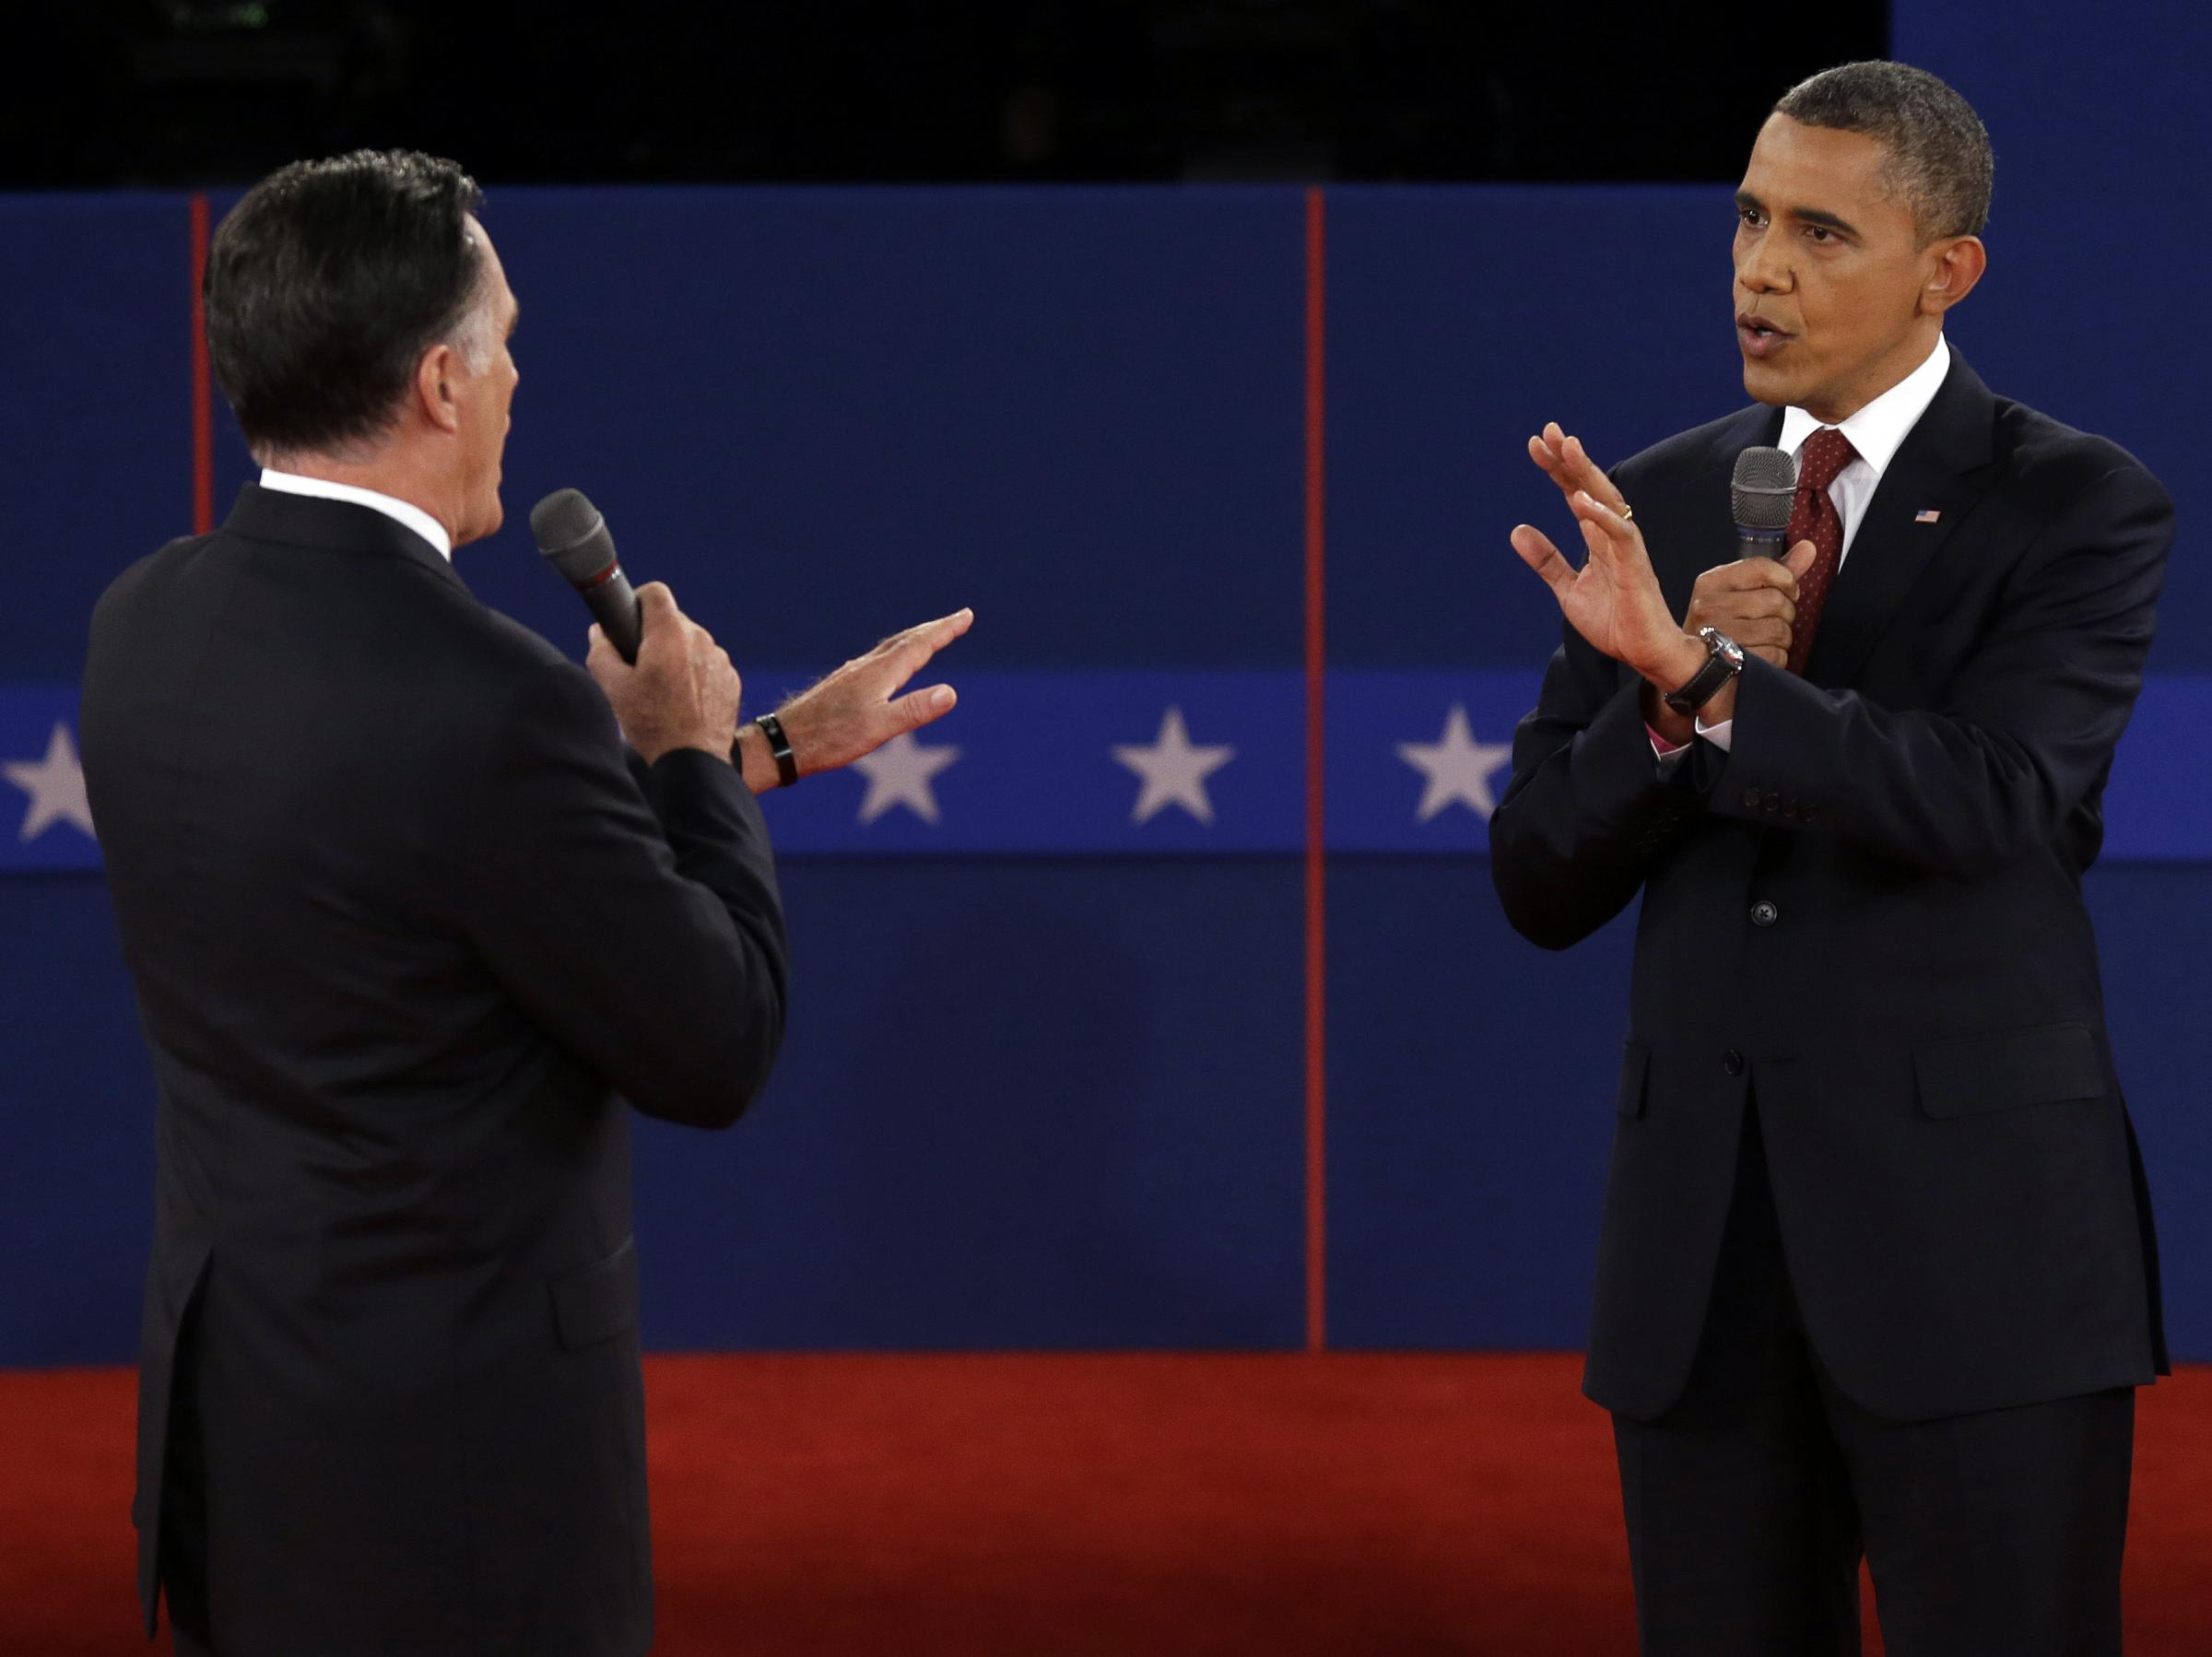 Gov. Mitt Romney, R-MA and Sen. Barack Obama, D-IL complete the second Presidential Town Hall Debate at Hofstra University.